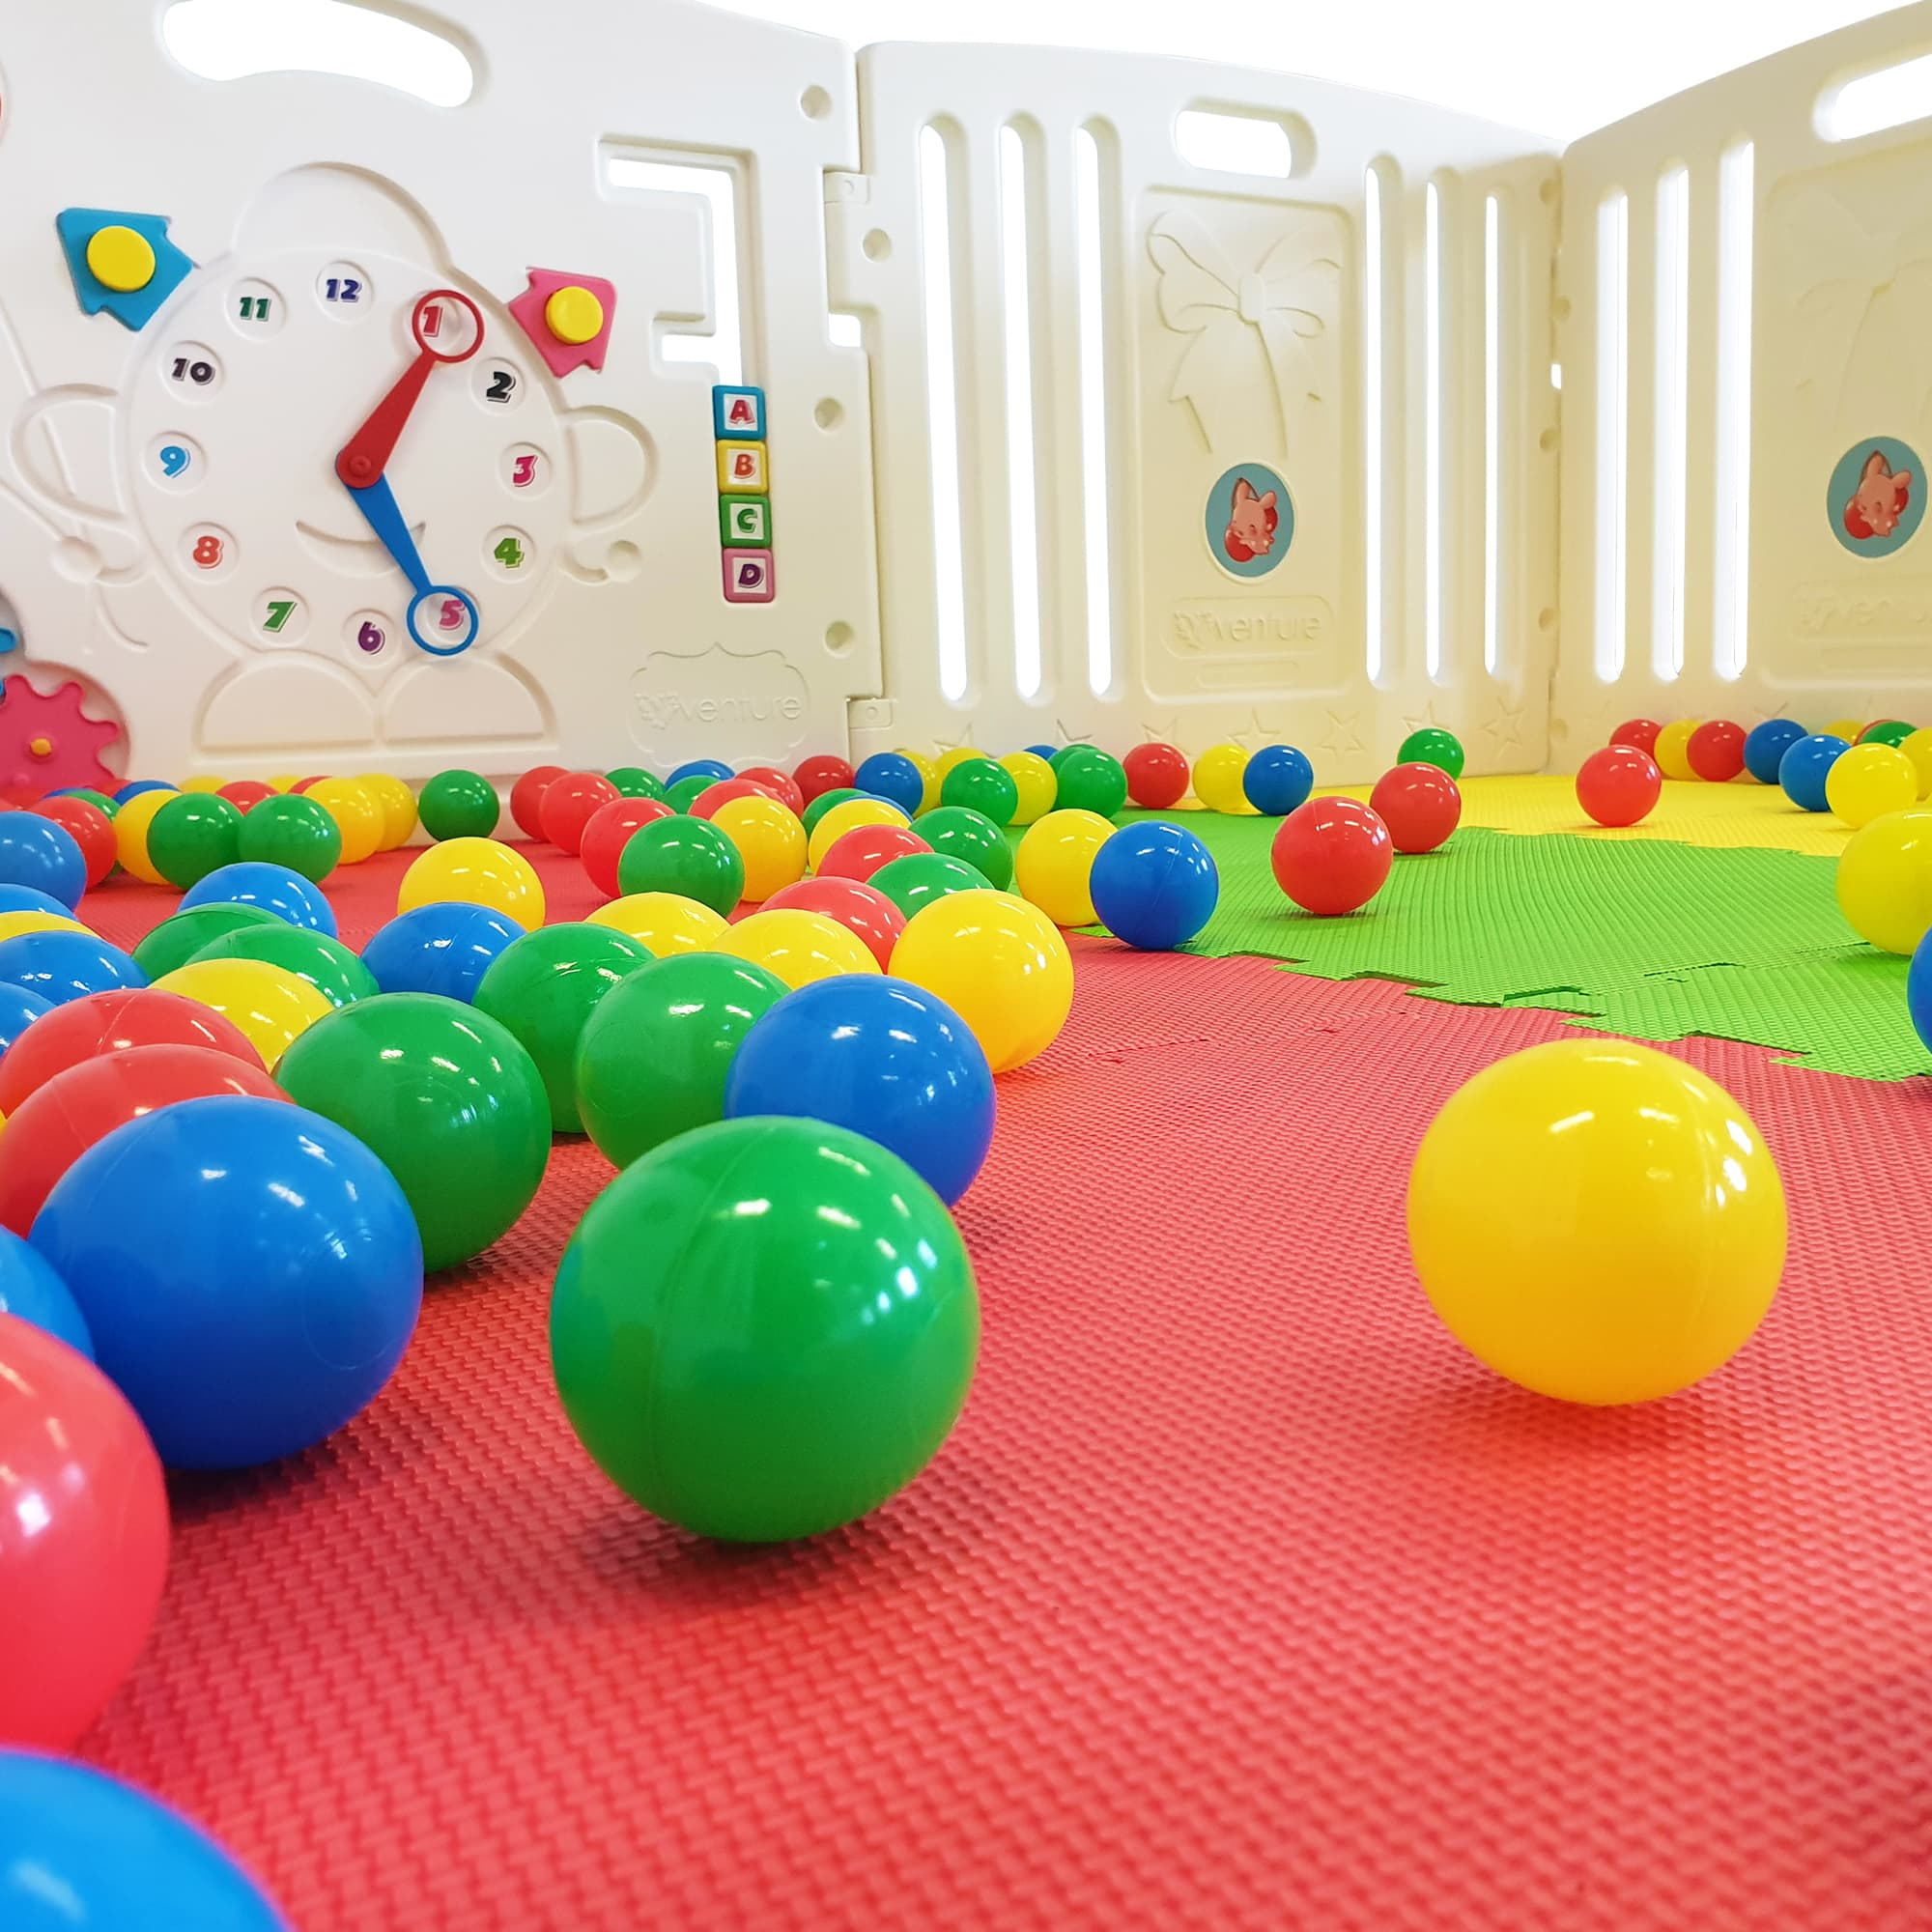 The playpen also includes child safe play balls.